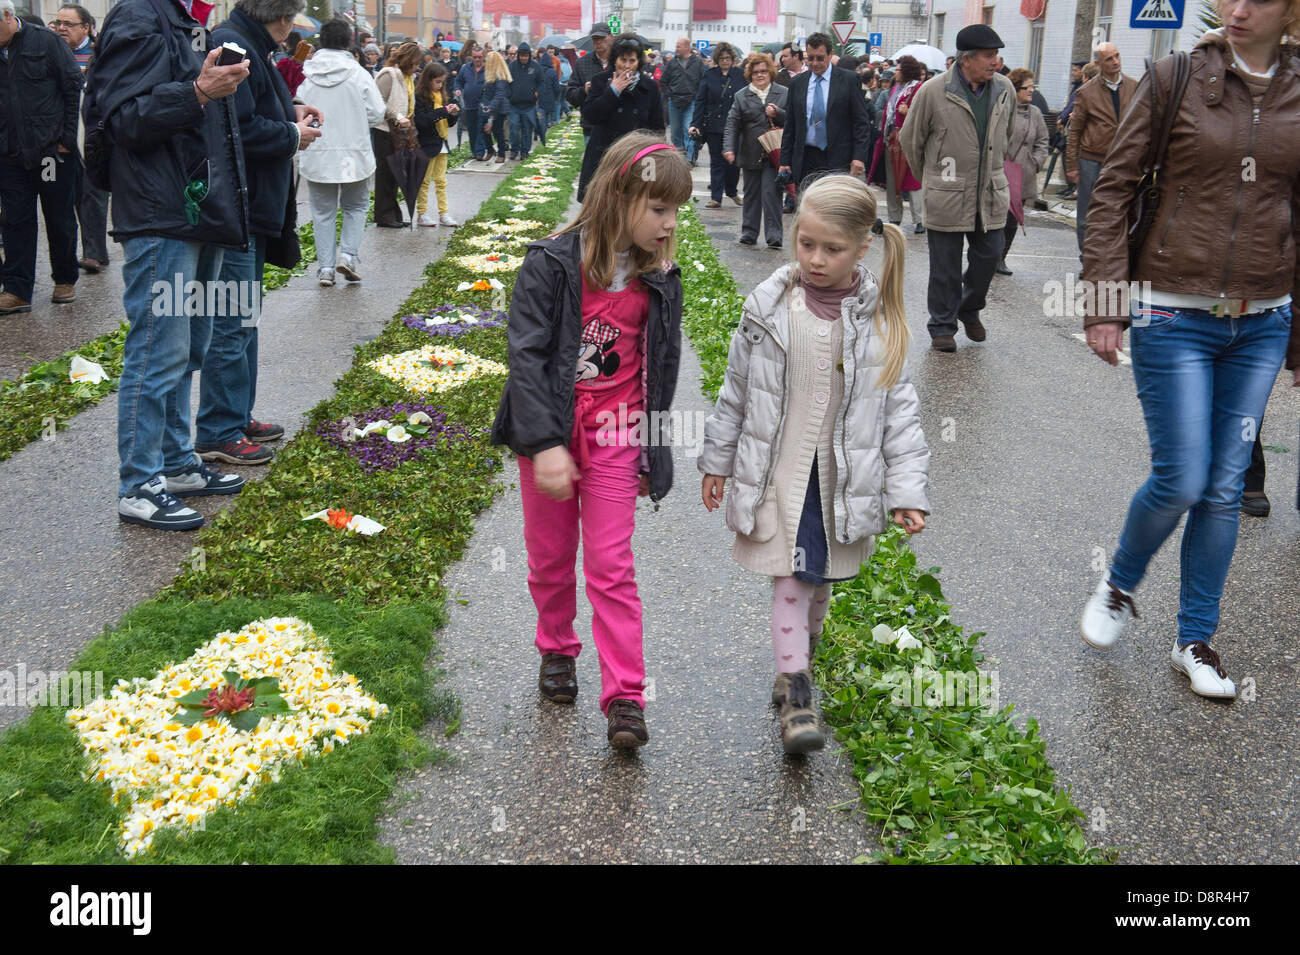 People walking on street decorated with wild flowers Easter Sunday Flower Torches Festival São Brás de - Stock Image